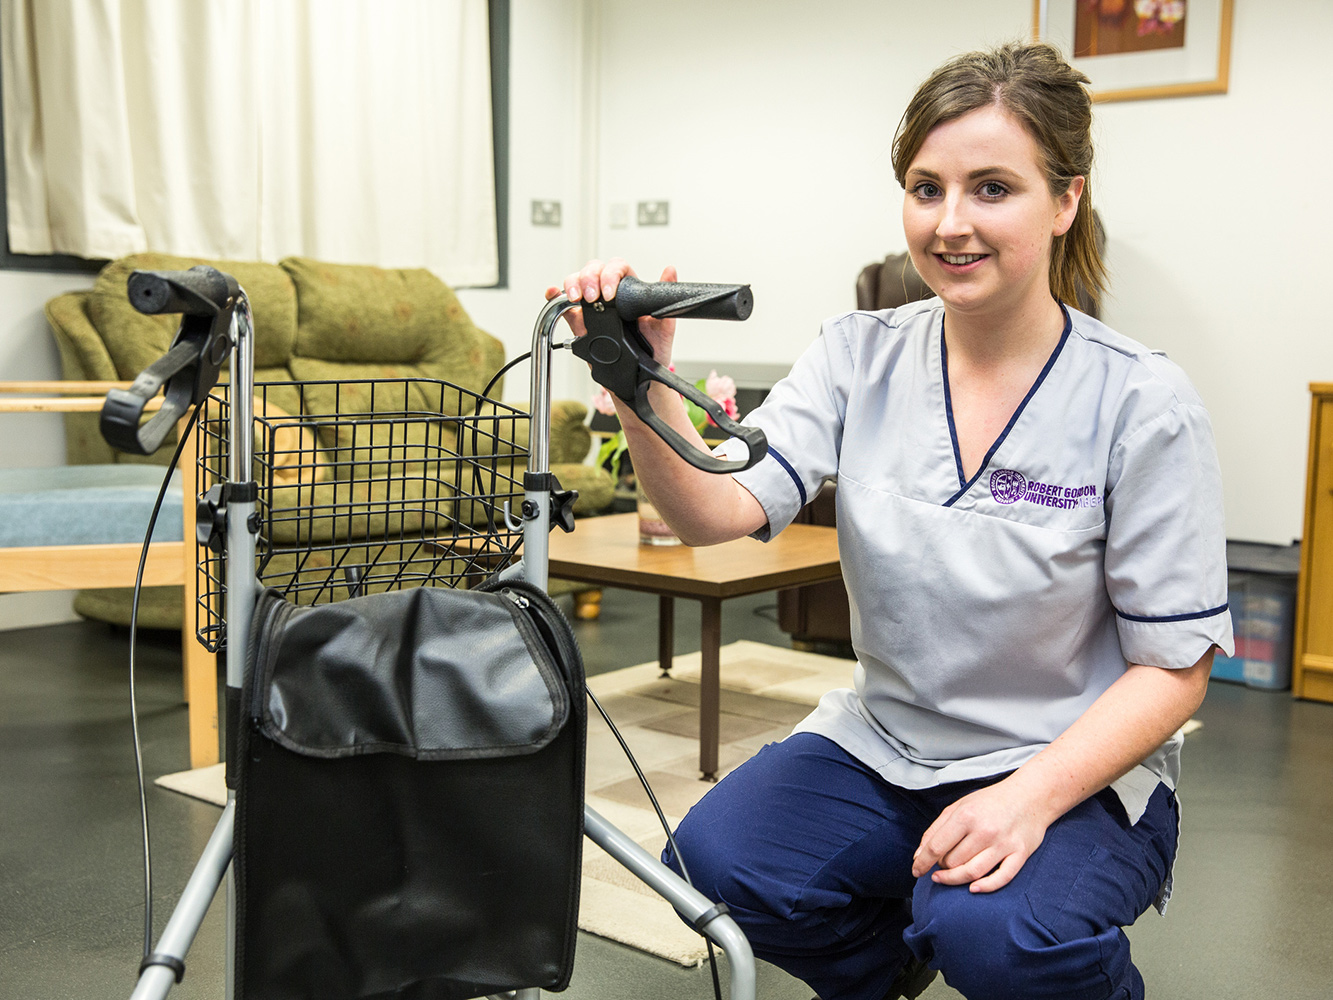 A day in the life of an Occupational Therapist - Dundee